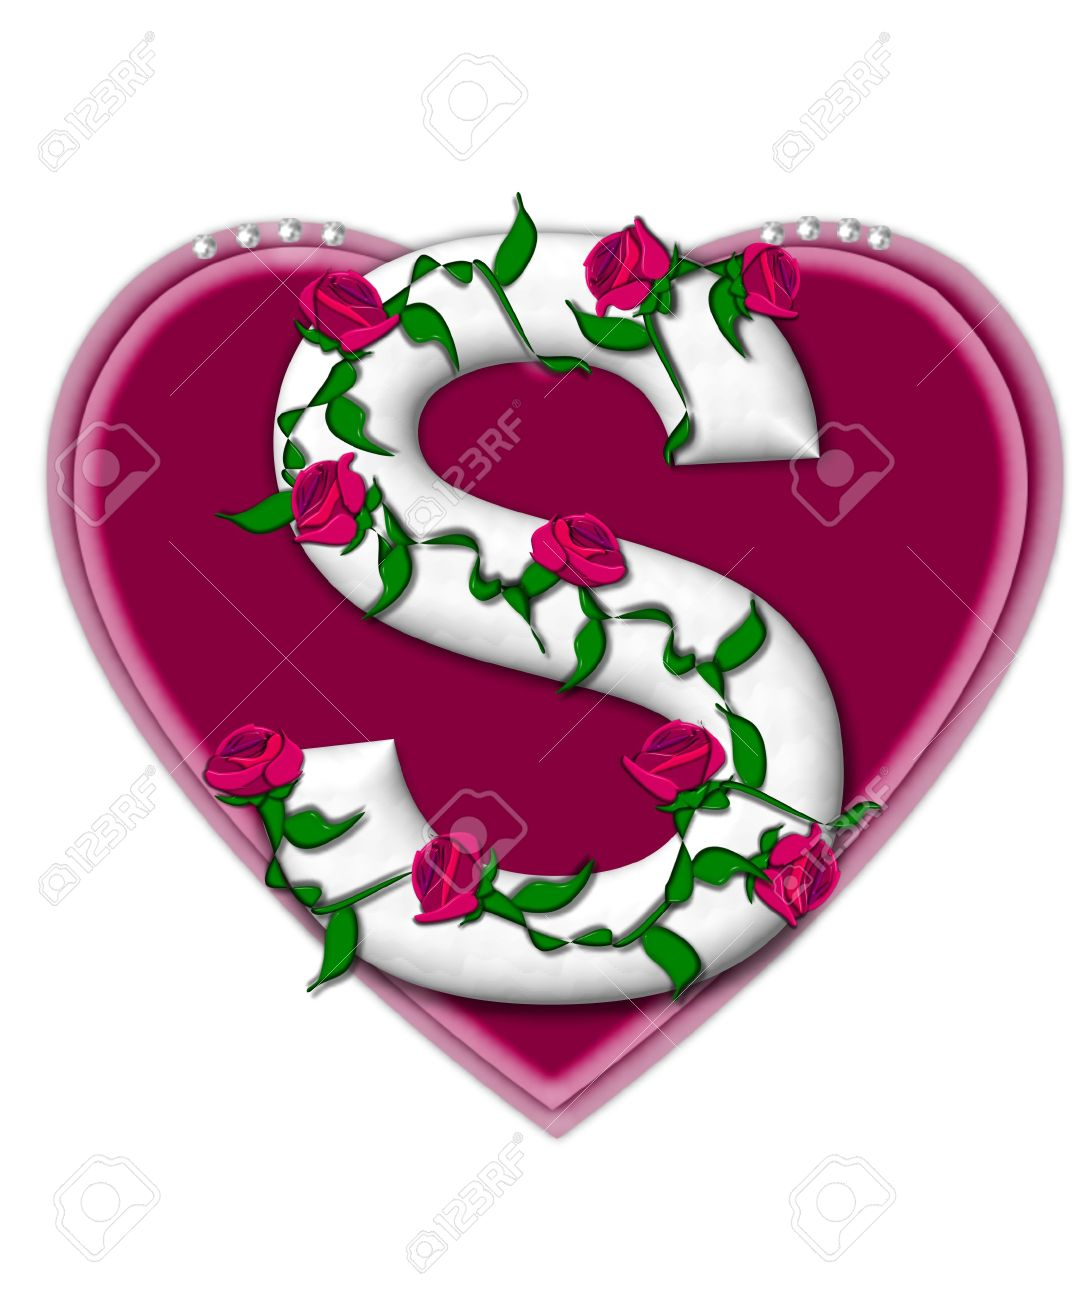 Ordinaire Stock Photo   The Letter S, In The Alphabet Set Rosey Vine, Is A White  Letter With Climbing Roses Twining Around Its Shape. It Sets On Two Large  Hearts ...